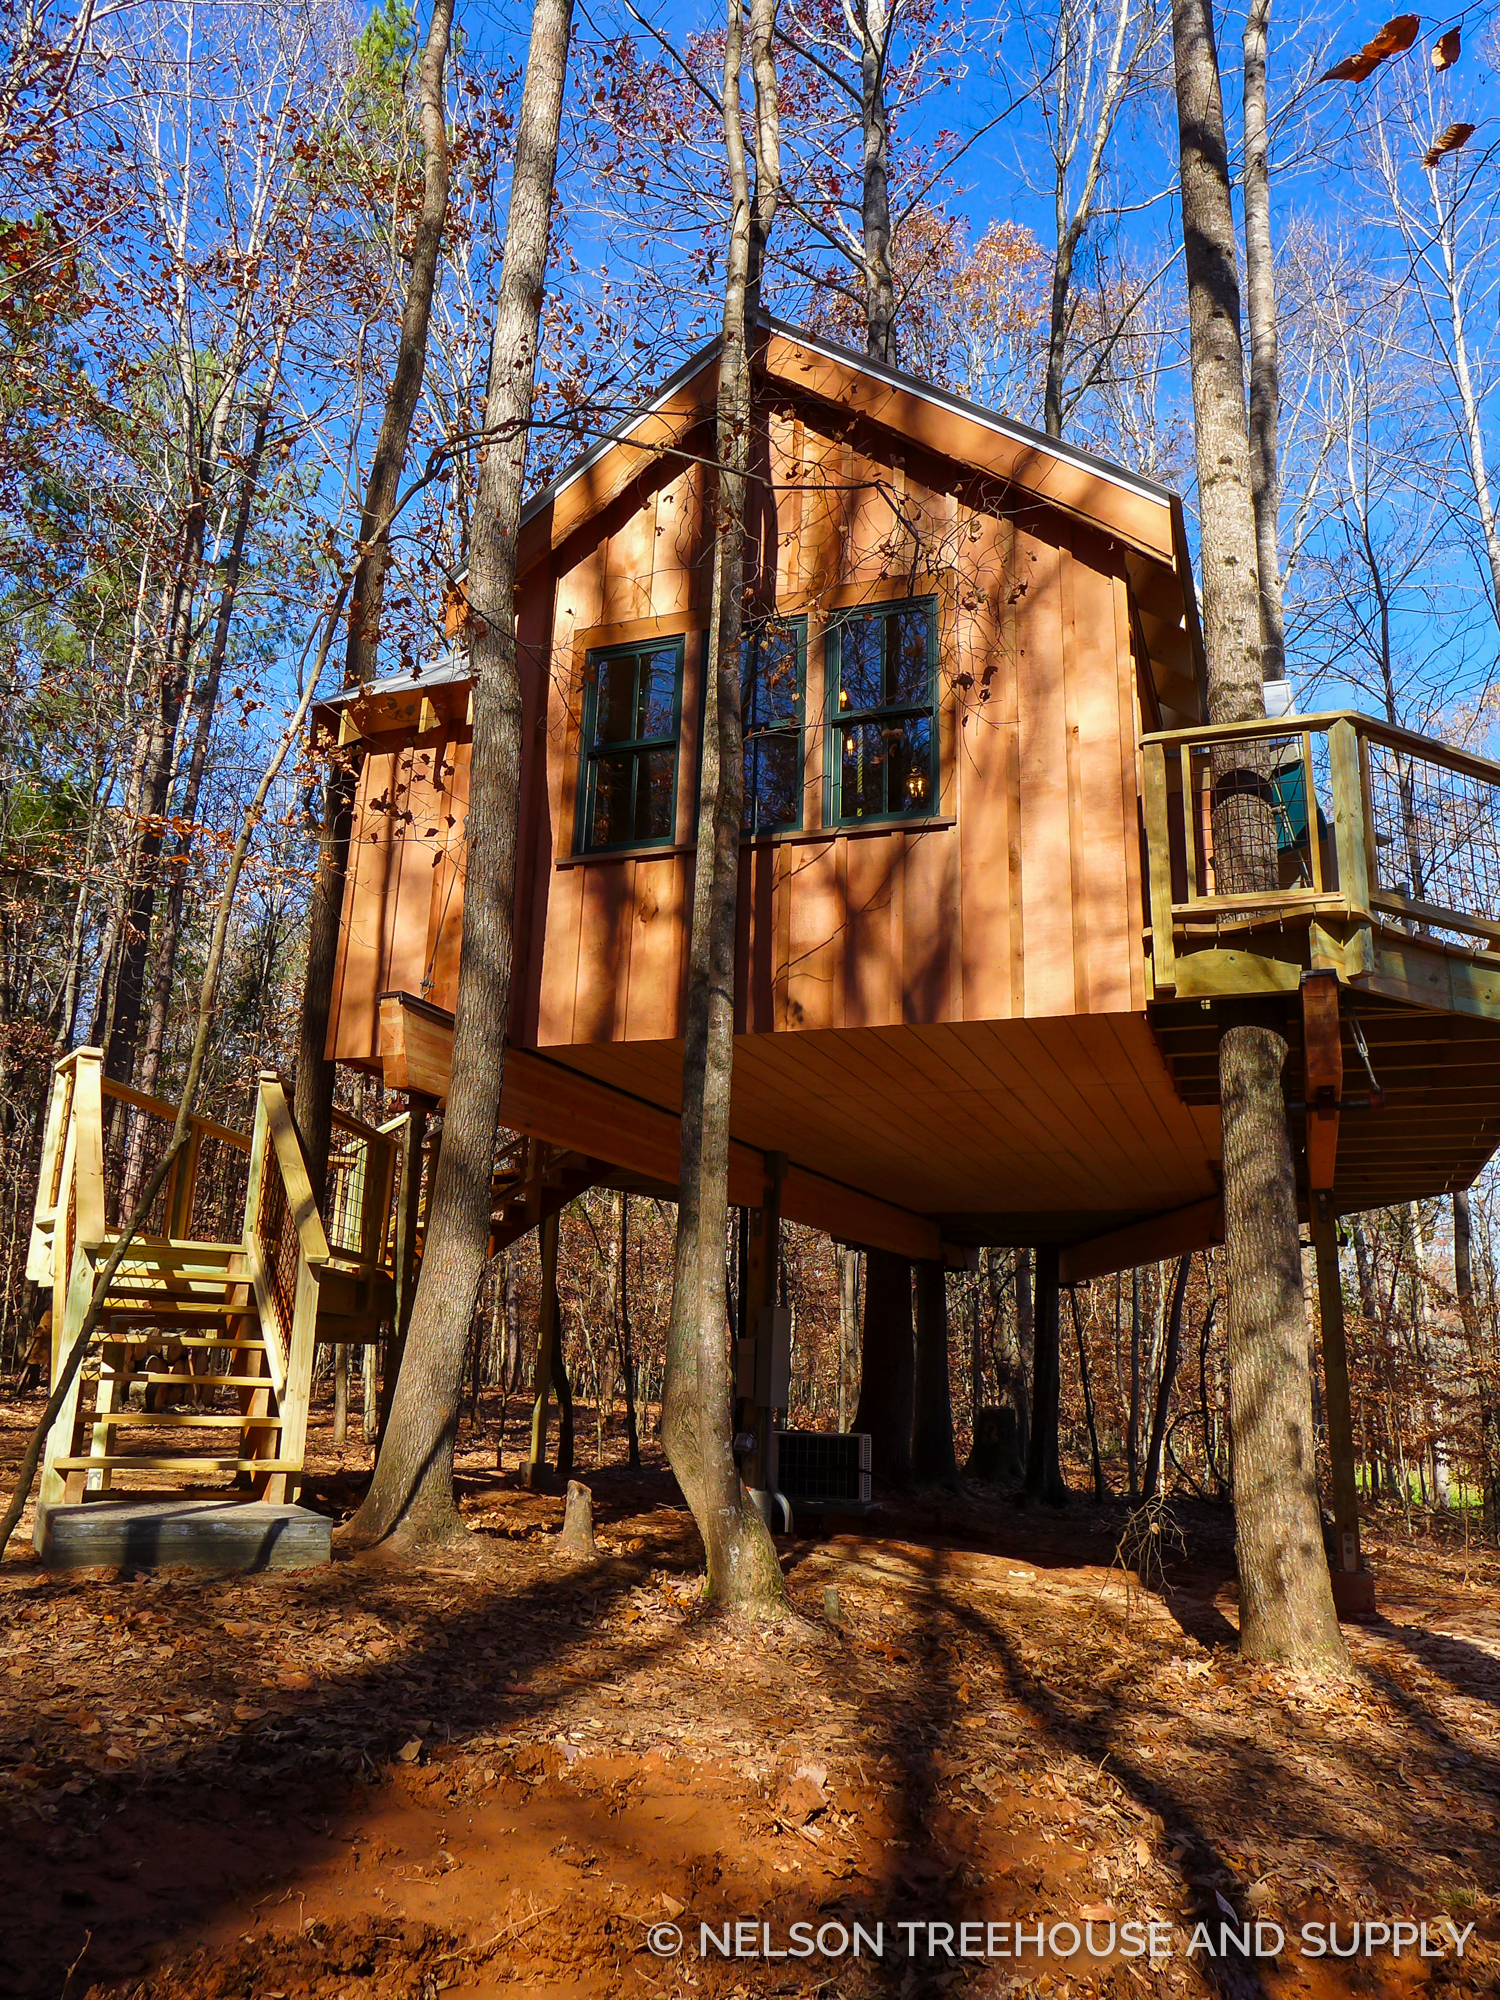 Storybook Farm Nelson Treehouse